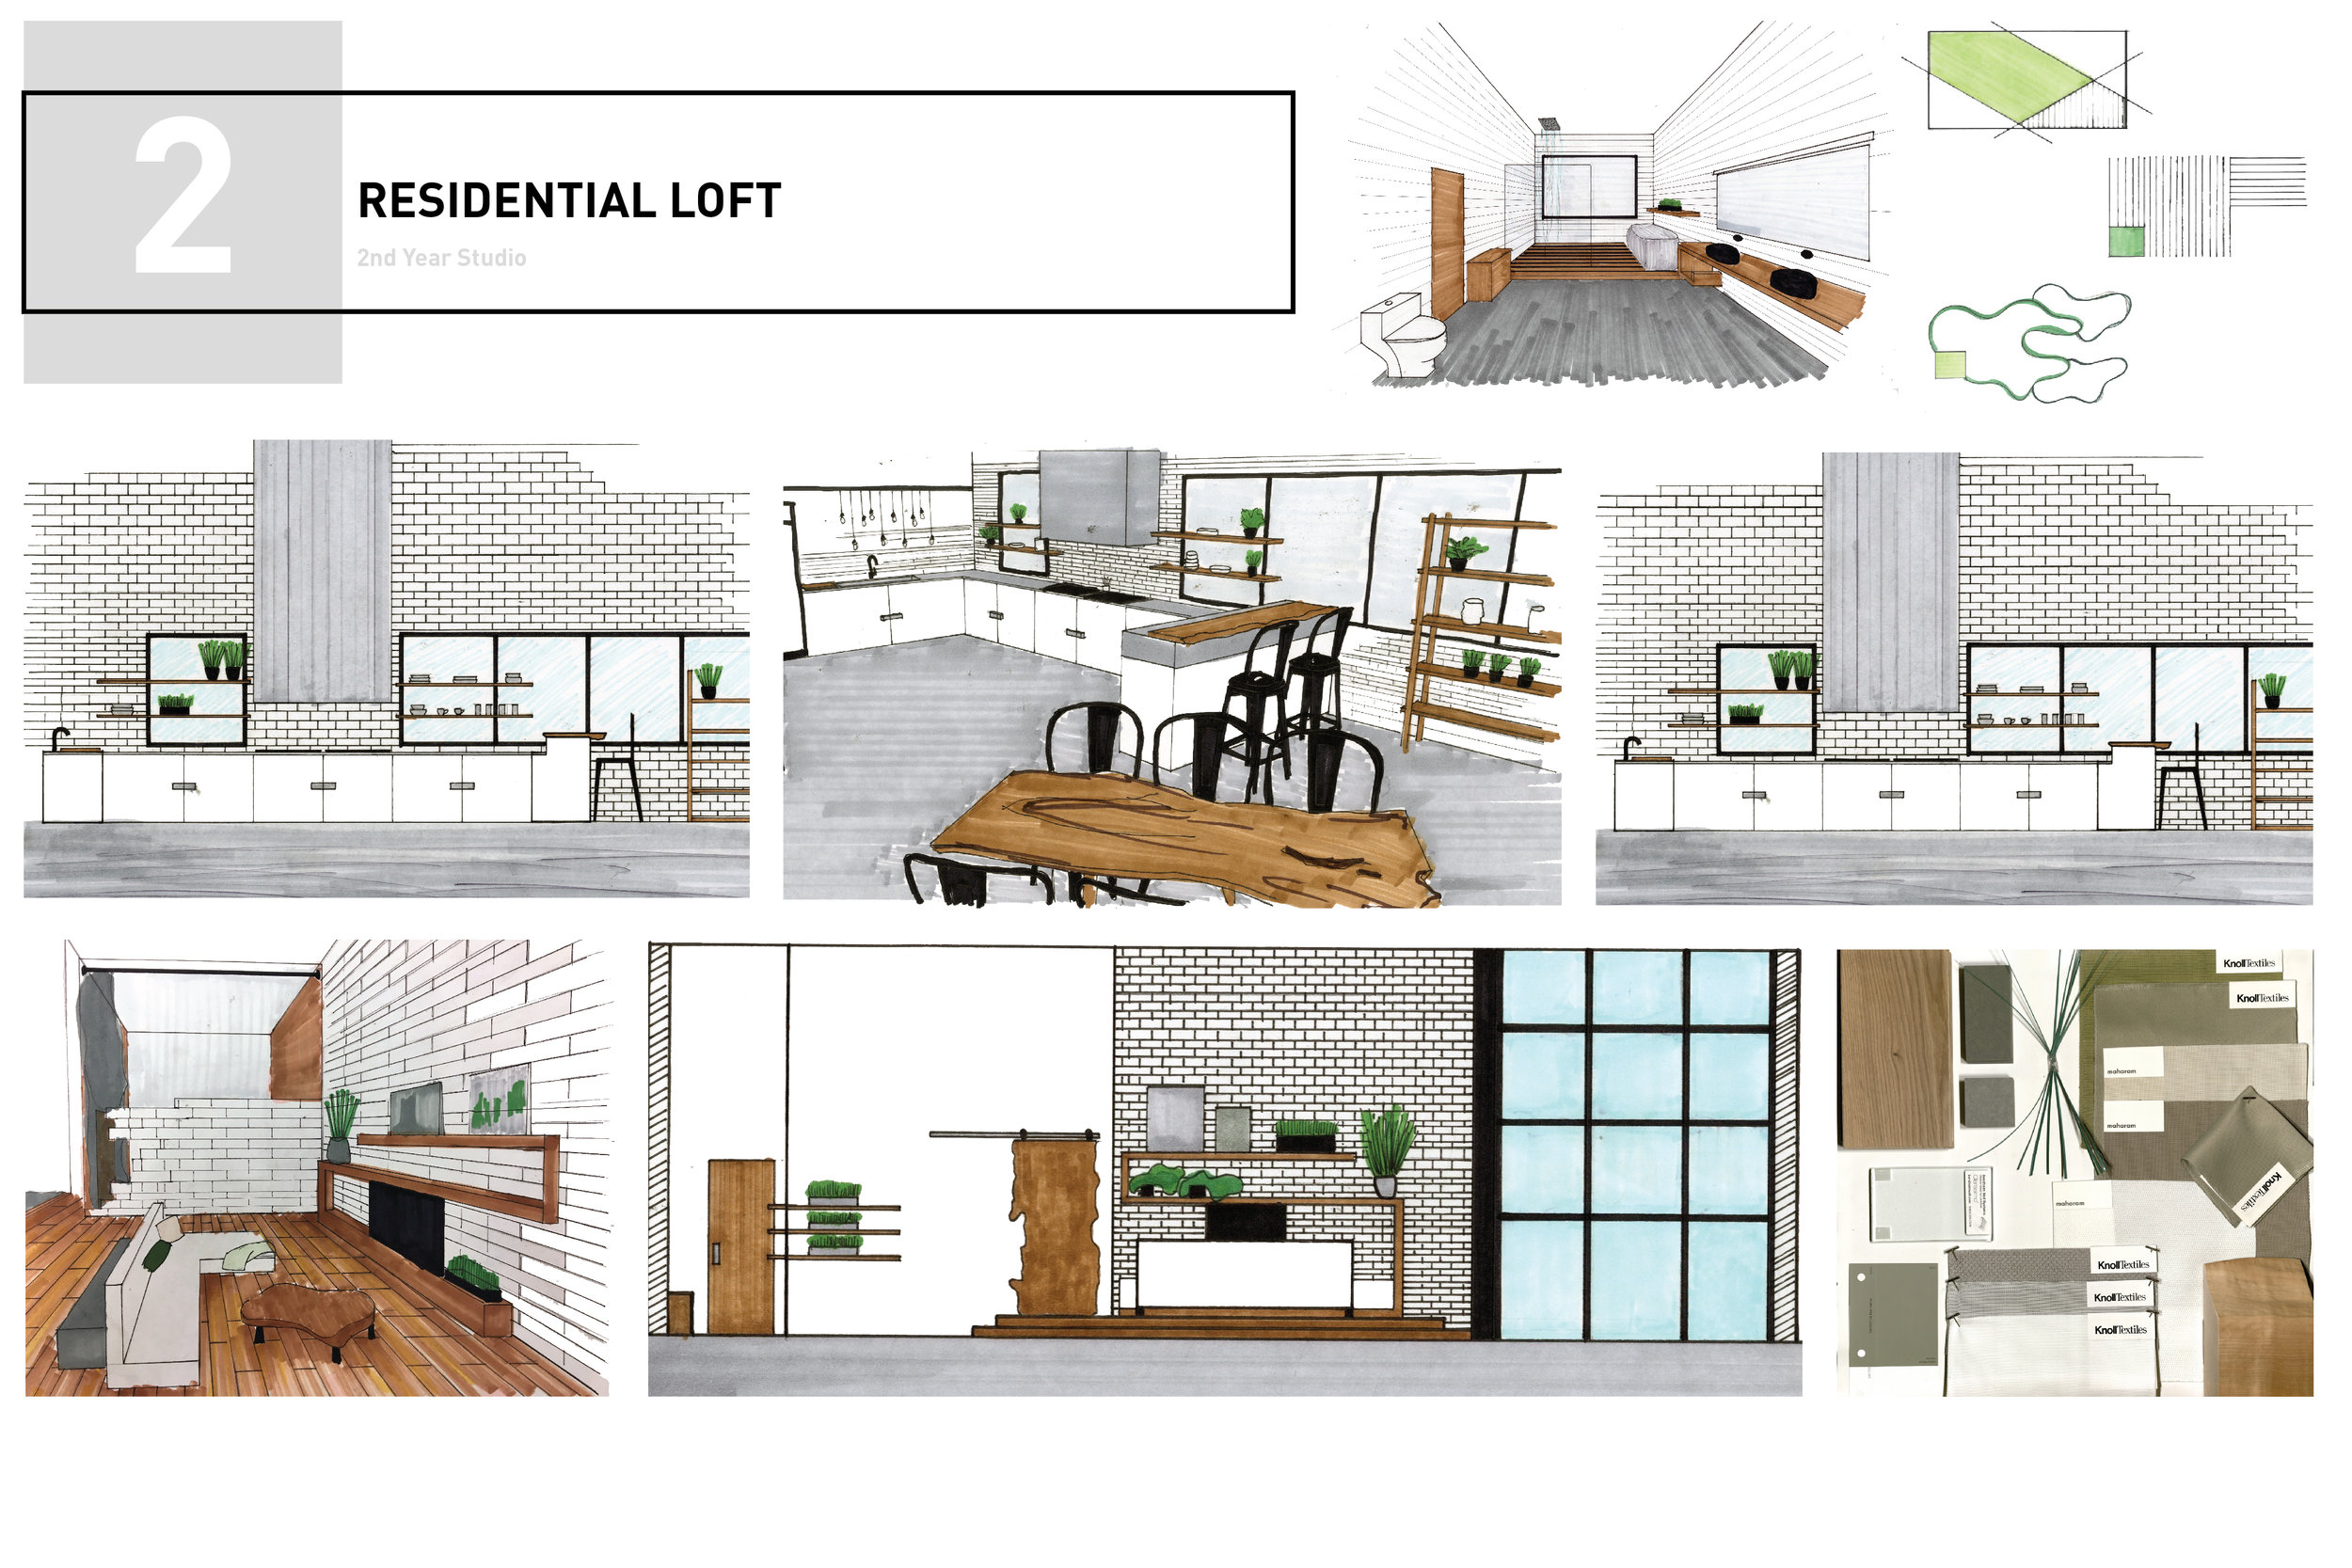 Residential Loft Project